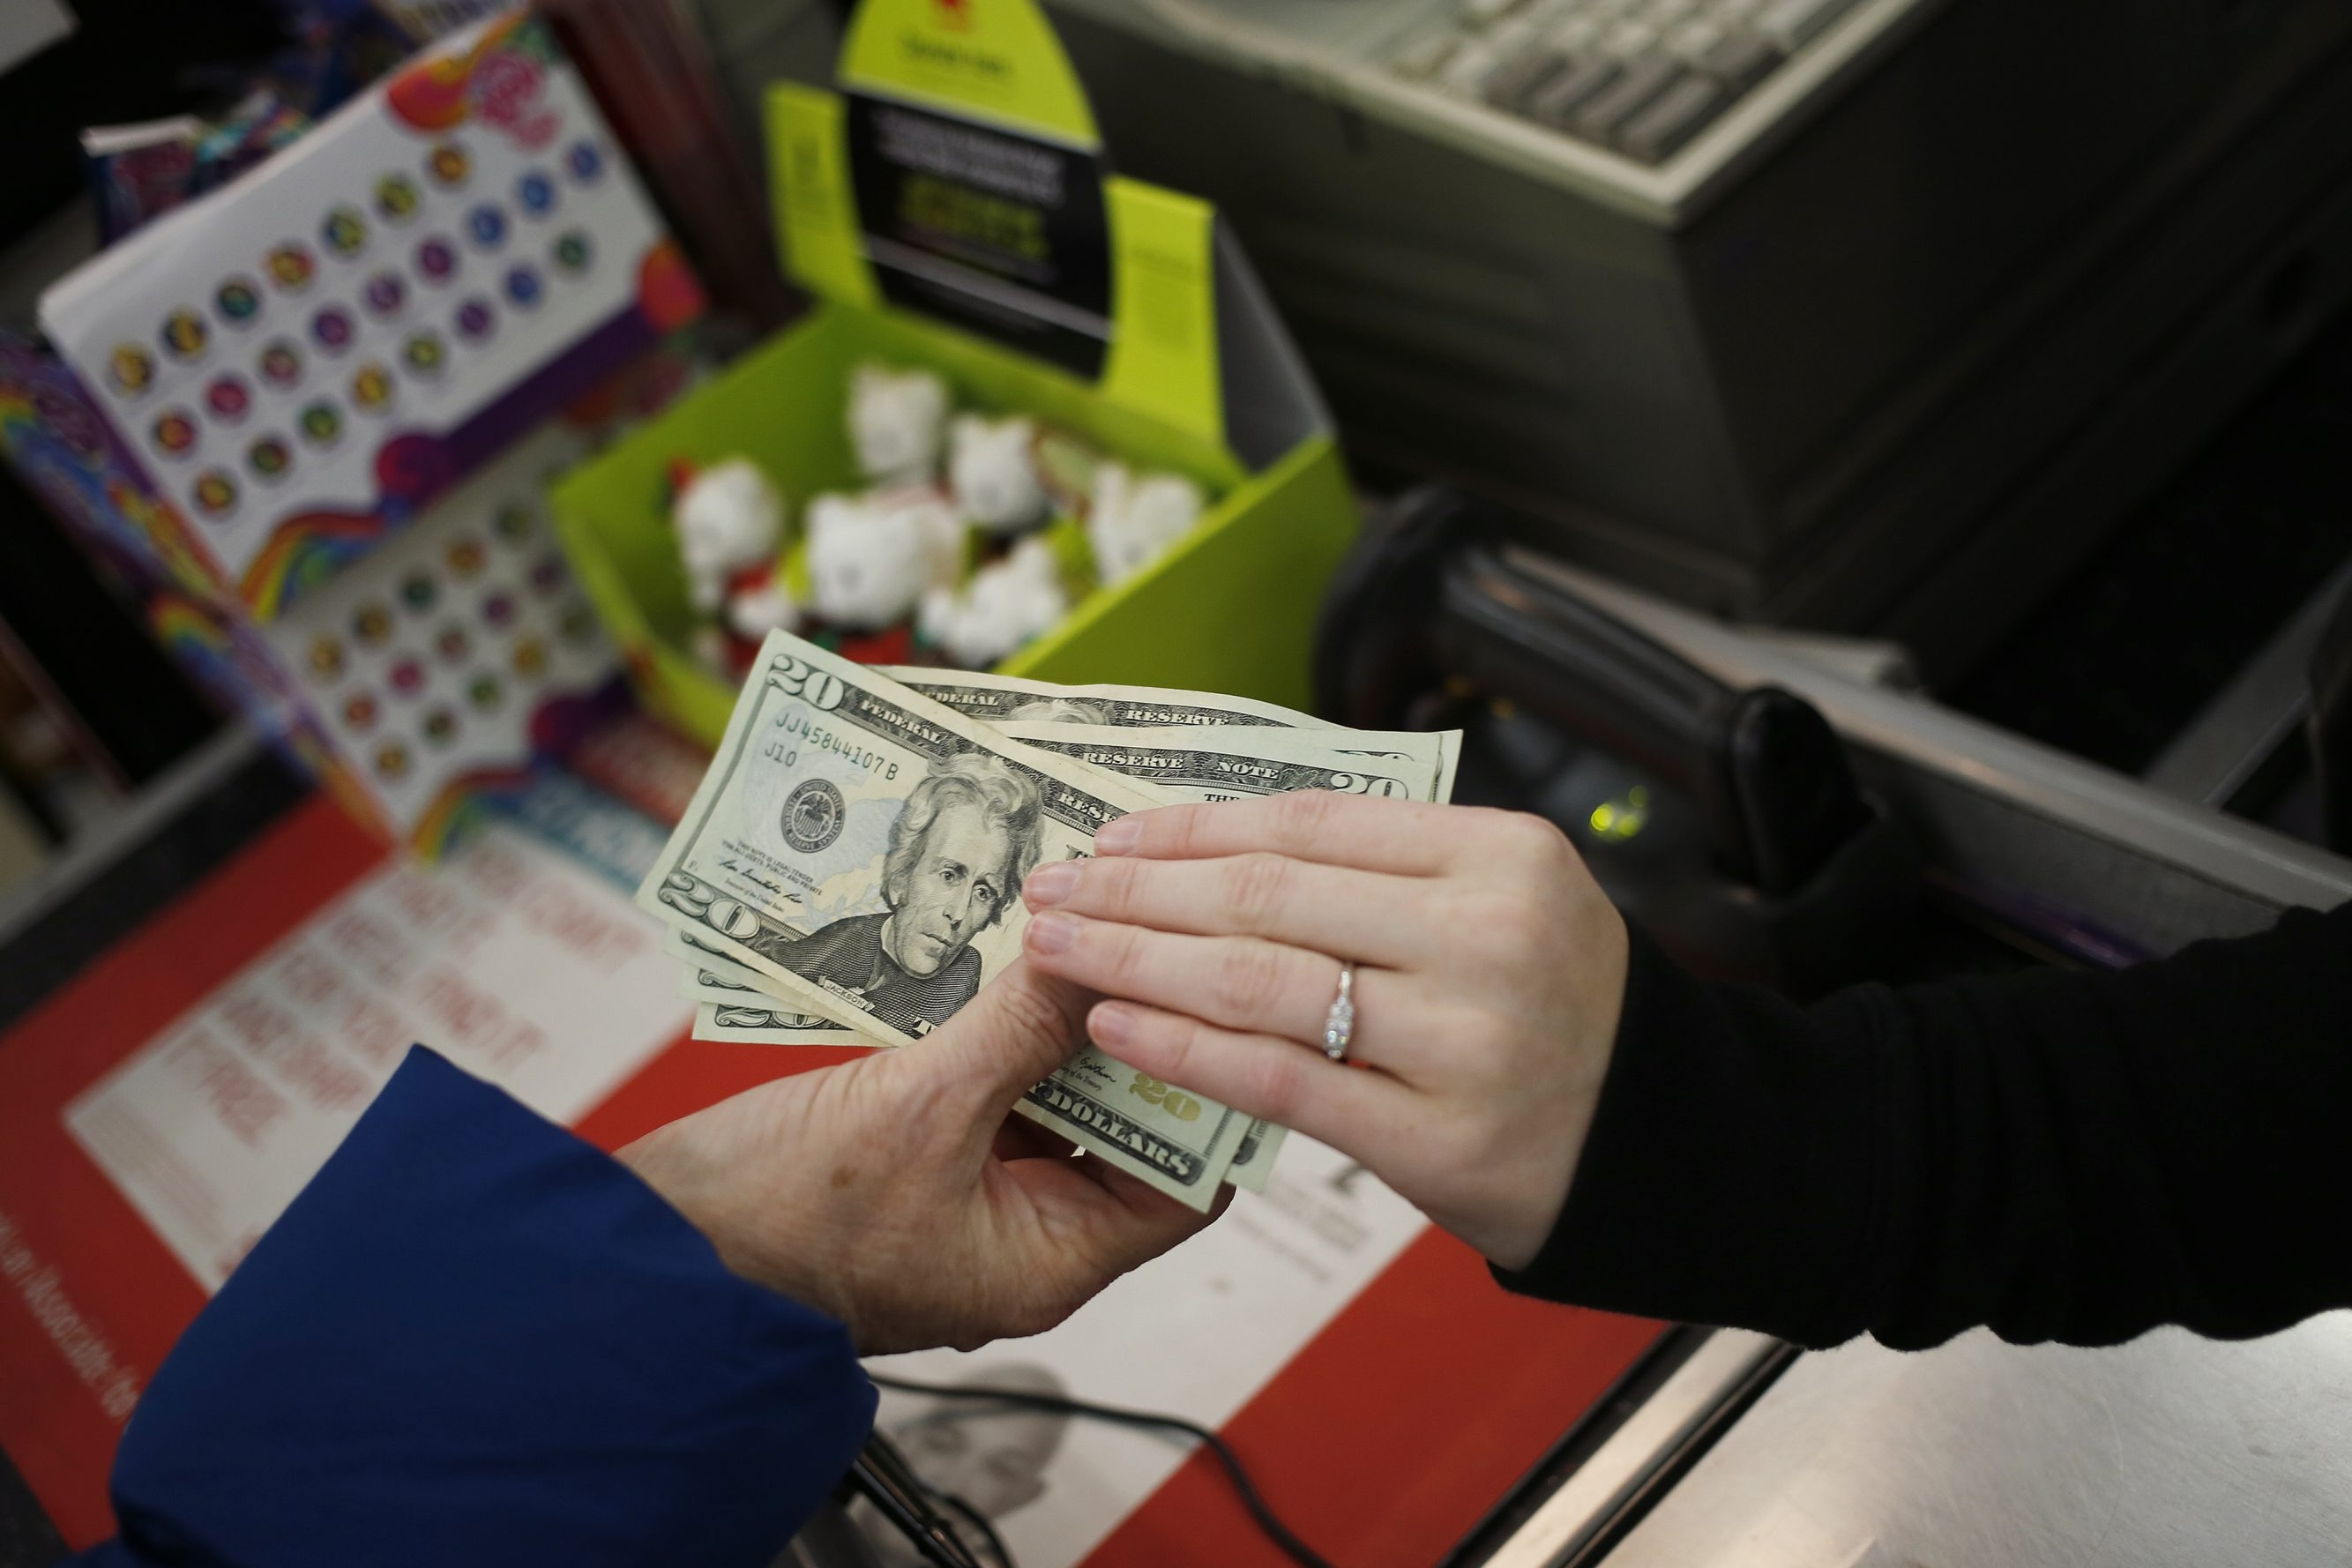 A customer, left, hands over U.S. twenty dollar bills as she pays for her purchases at the checkout inside a Kmart discount store, operated Sears Holdings Corp., ahead of Black Friday in Frankfort, Kentucky, U.S., on Thursday, Nov. 27, 2014. An estimated 140 million U.S. shoppers are expected to hit stores and the Web this weekend in search of discounts, kicking off what retailers predict will be the best holiday season in three years. Photographer: Luke Sharrett/Bloomberg